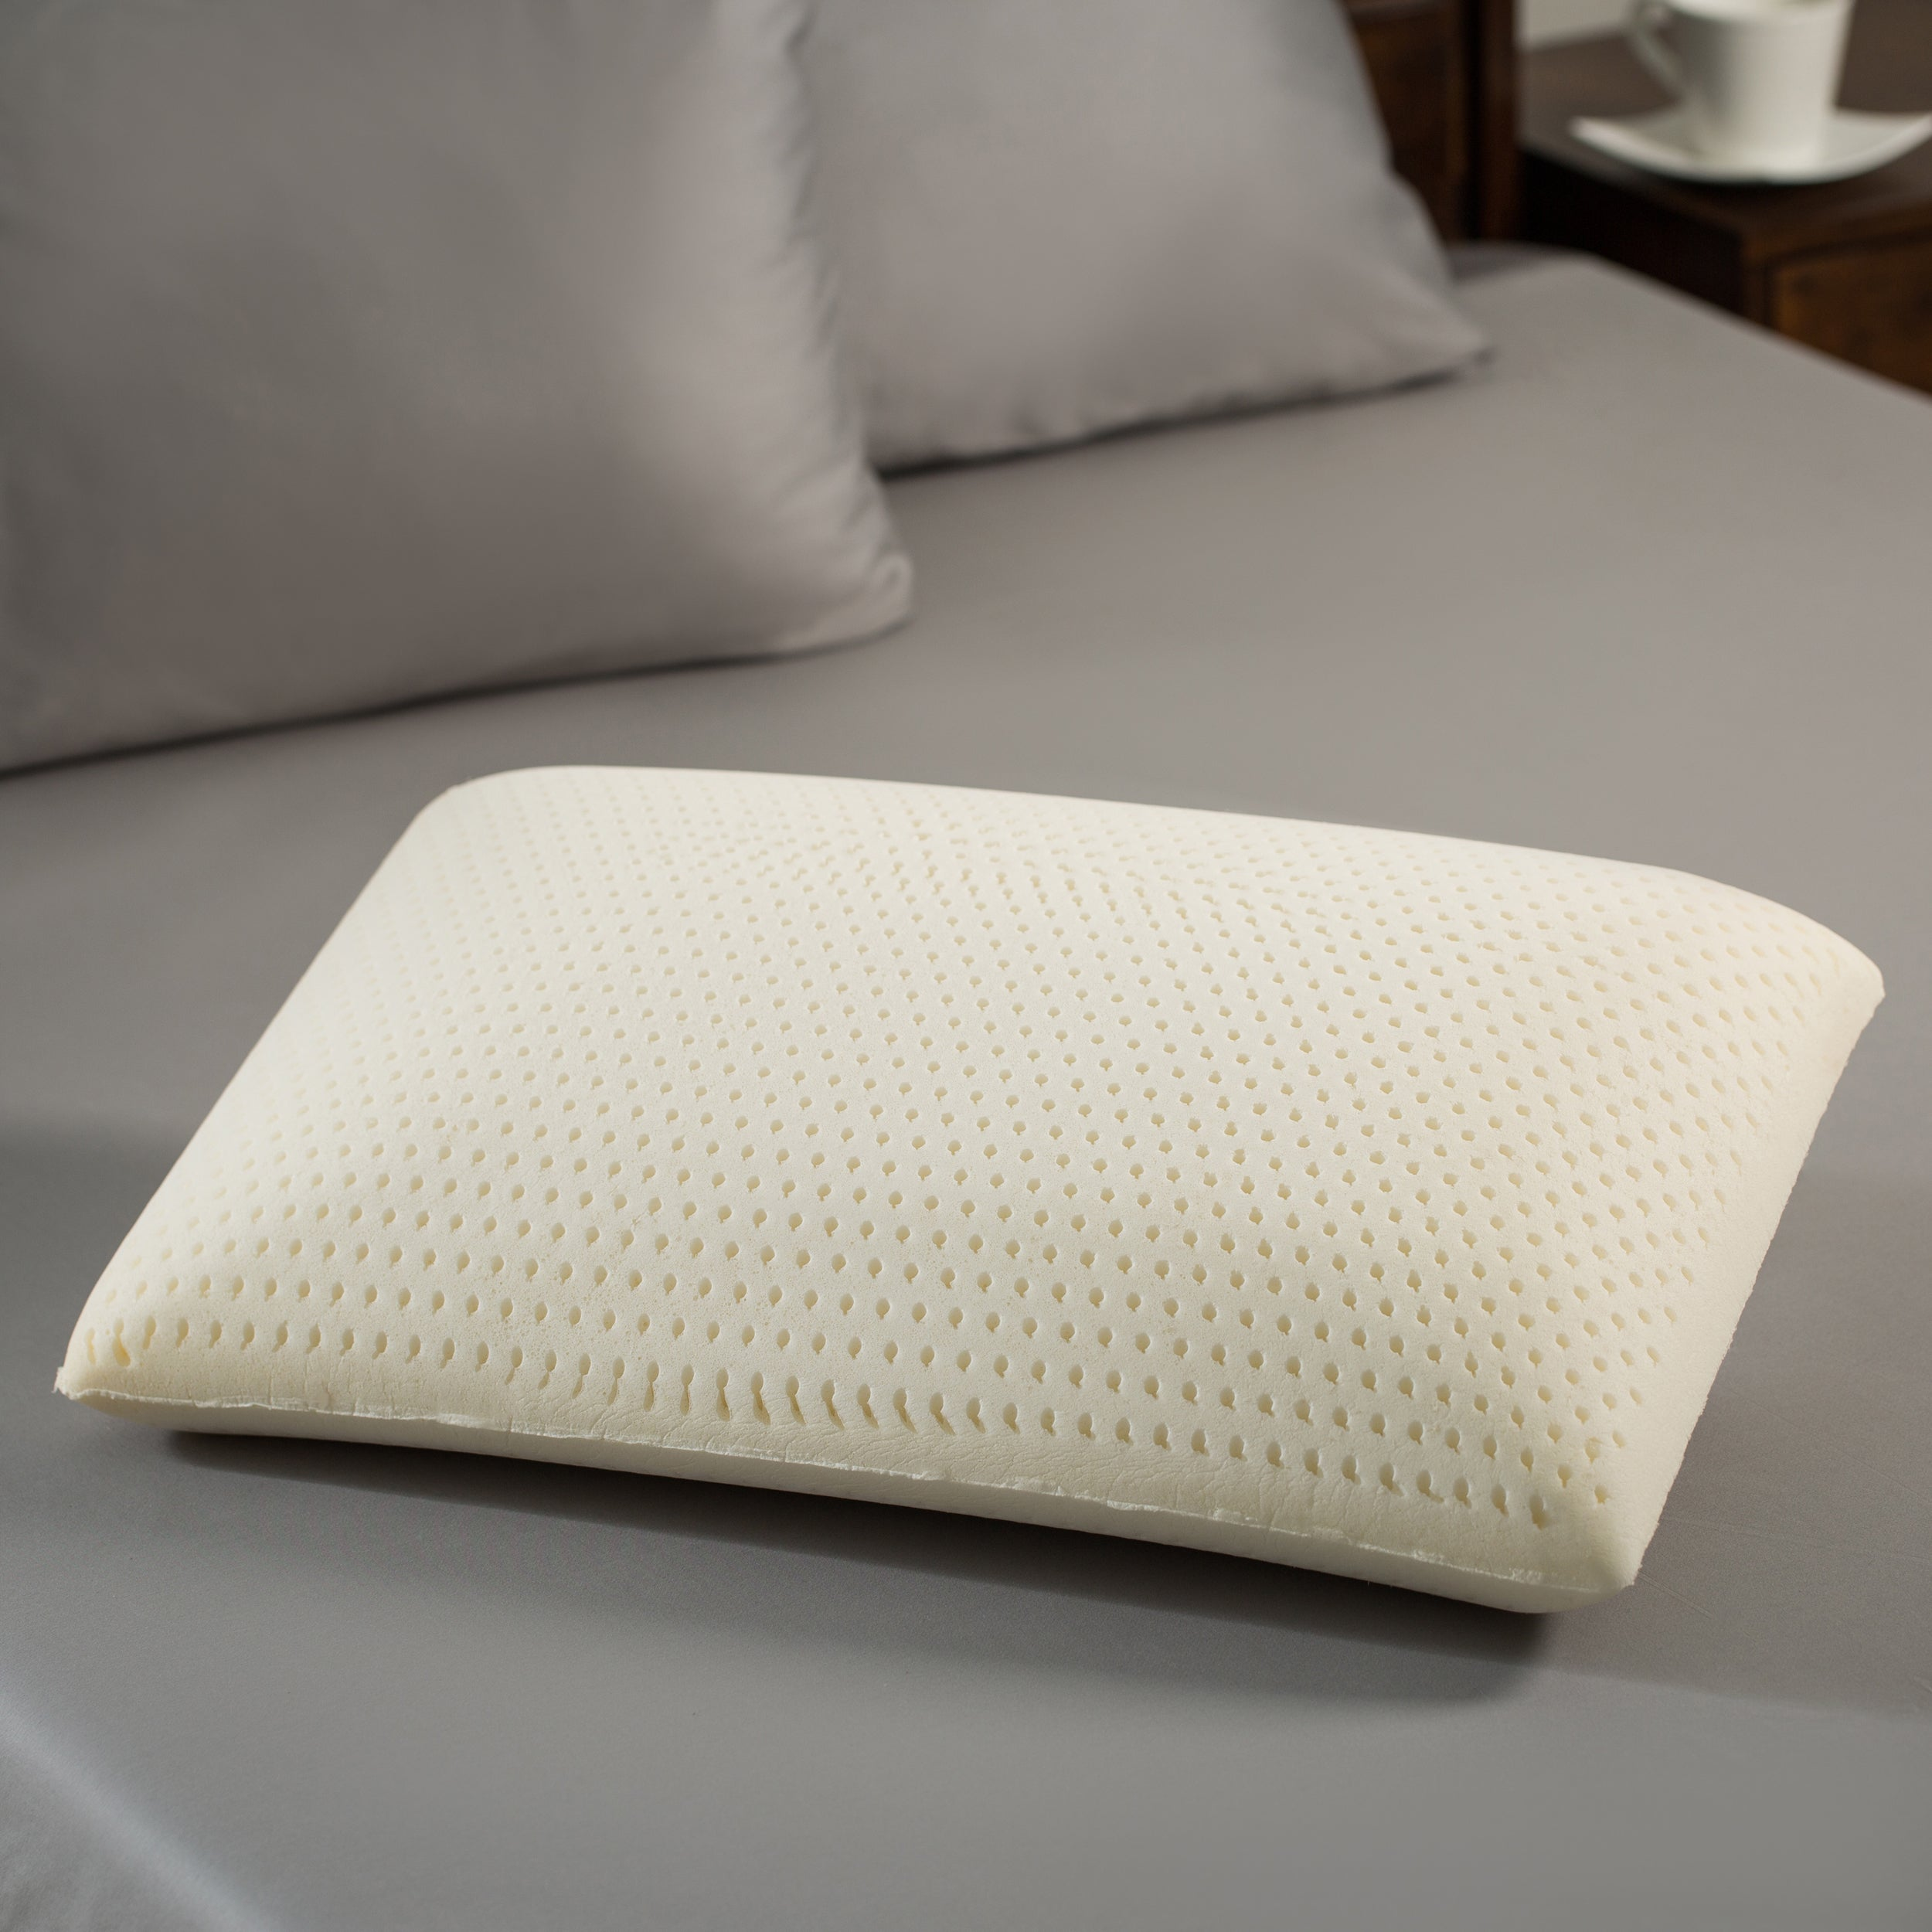 pillow comfort memory innovations p of hei touch wid qlt foam sleep spin prod